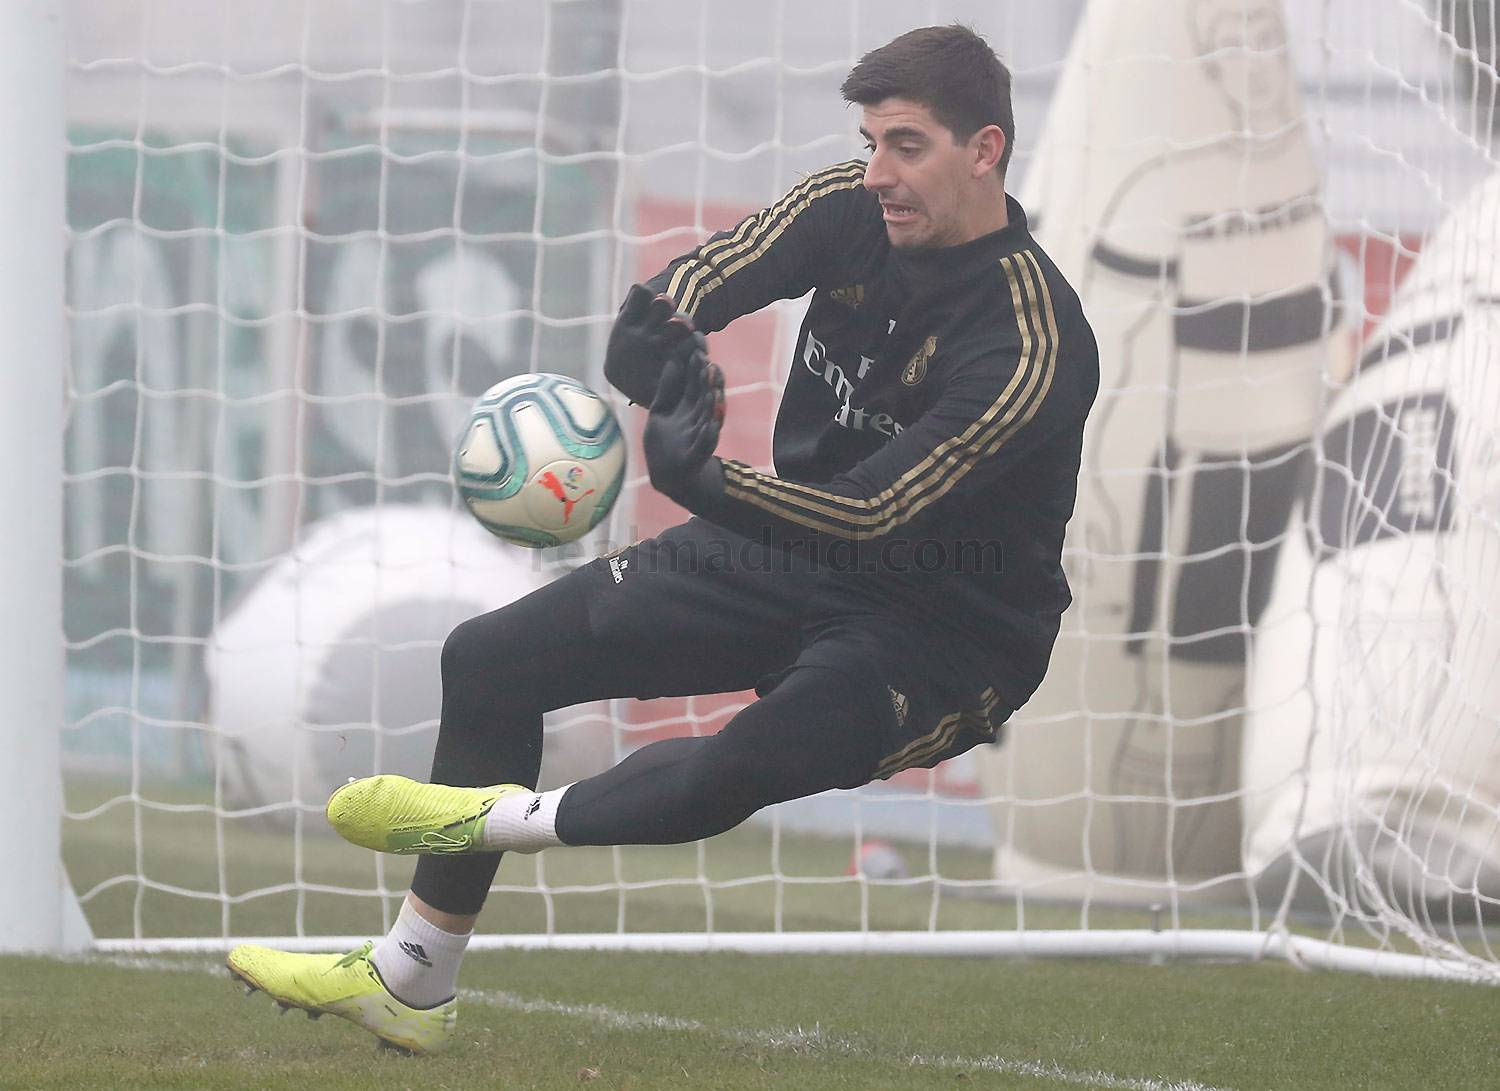 Real Madrid - Entrenamiento del Real Madrid  - 03-01-2020